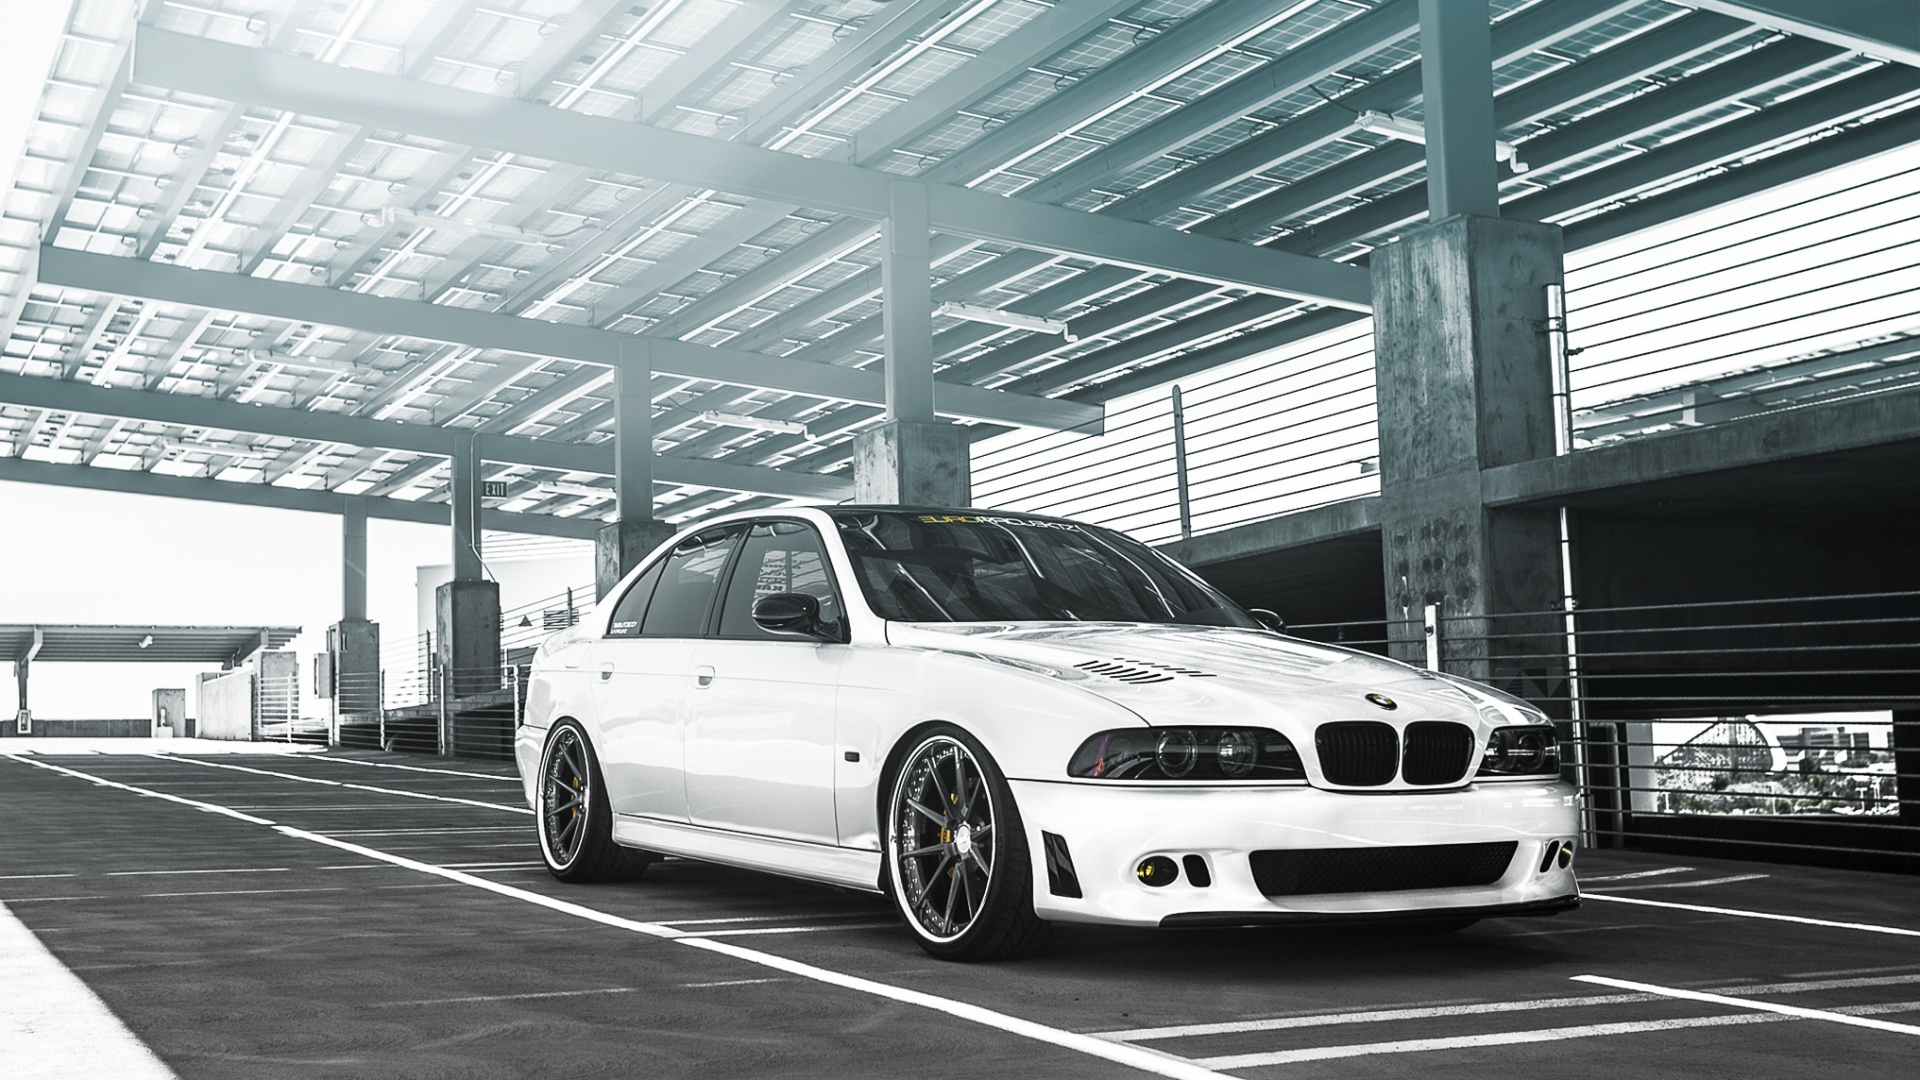 Bmw-m-Tuning-White-1920x1080-Need-iPhone-S-Plus-Background-for-IPhoneSPlus-Fo-wallpaper-wp3803361